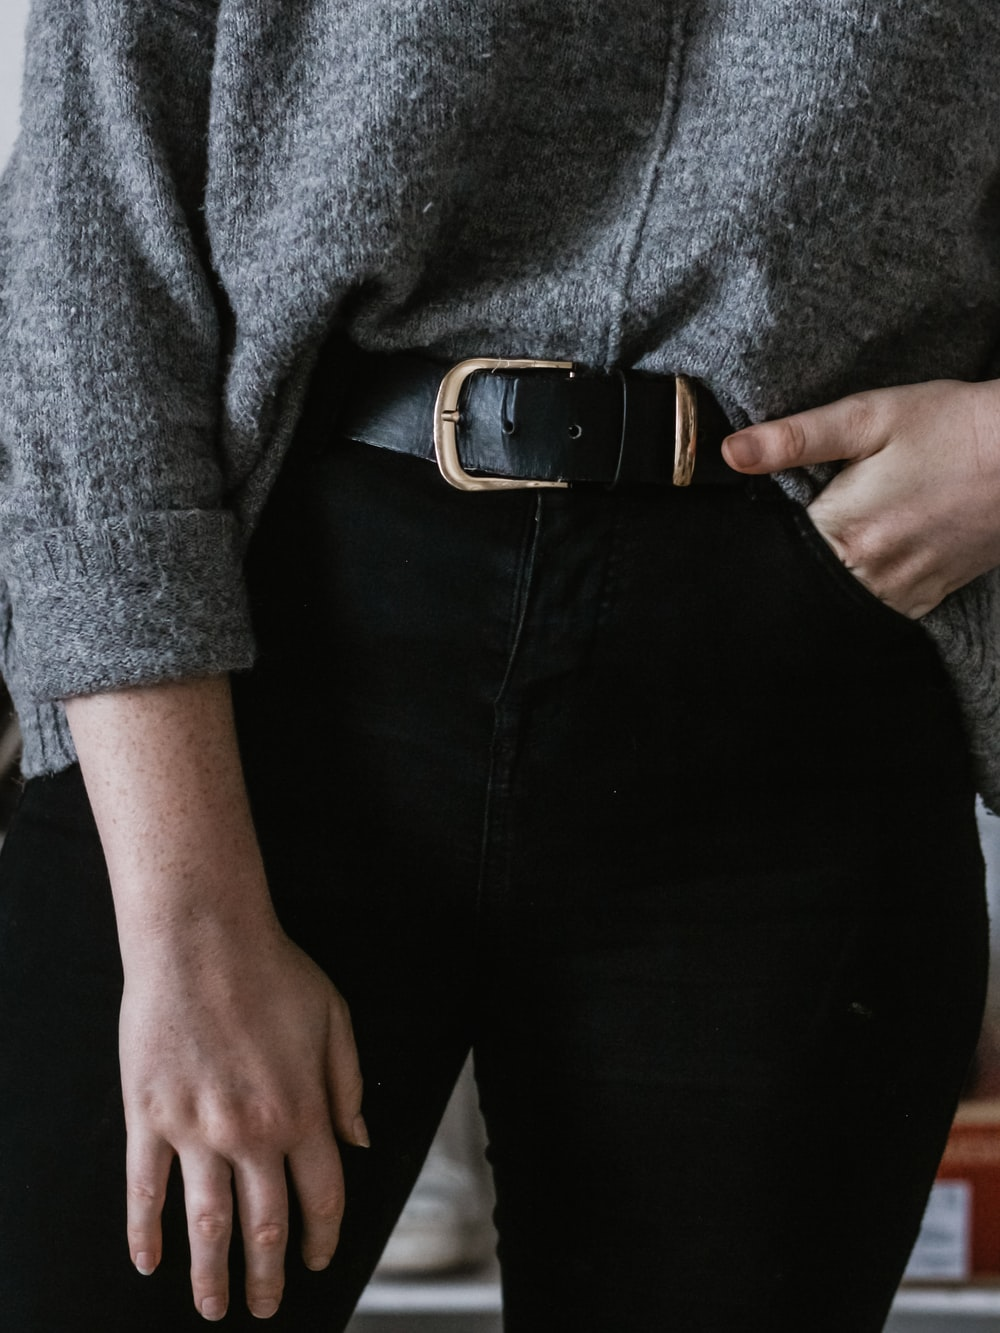 person wearing black leather belt